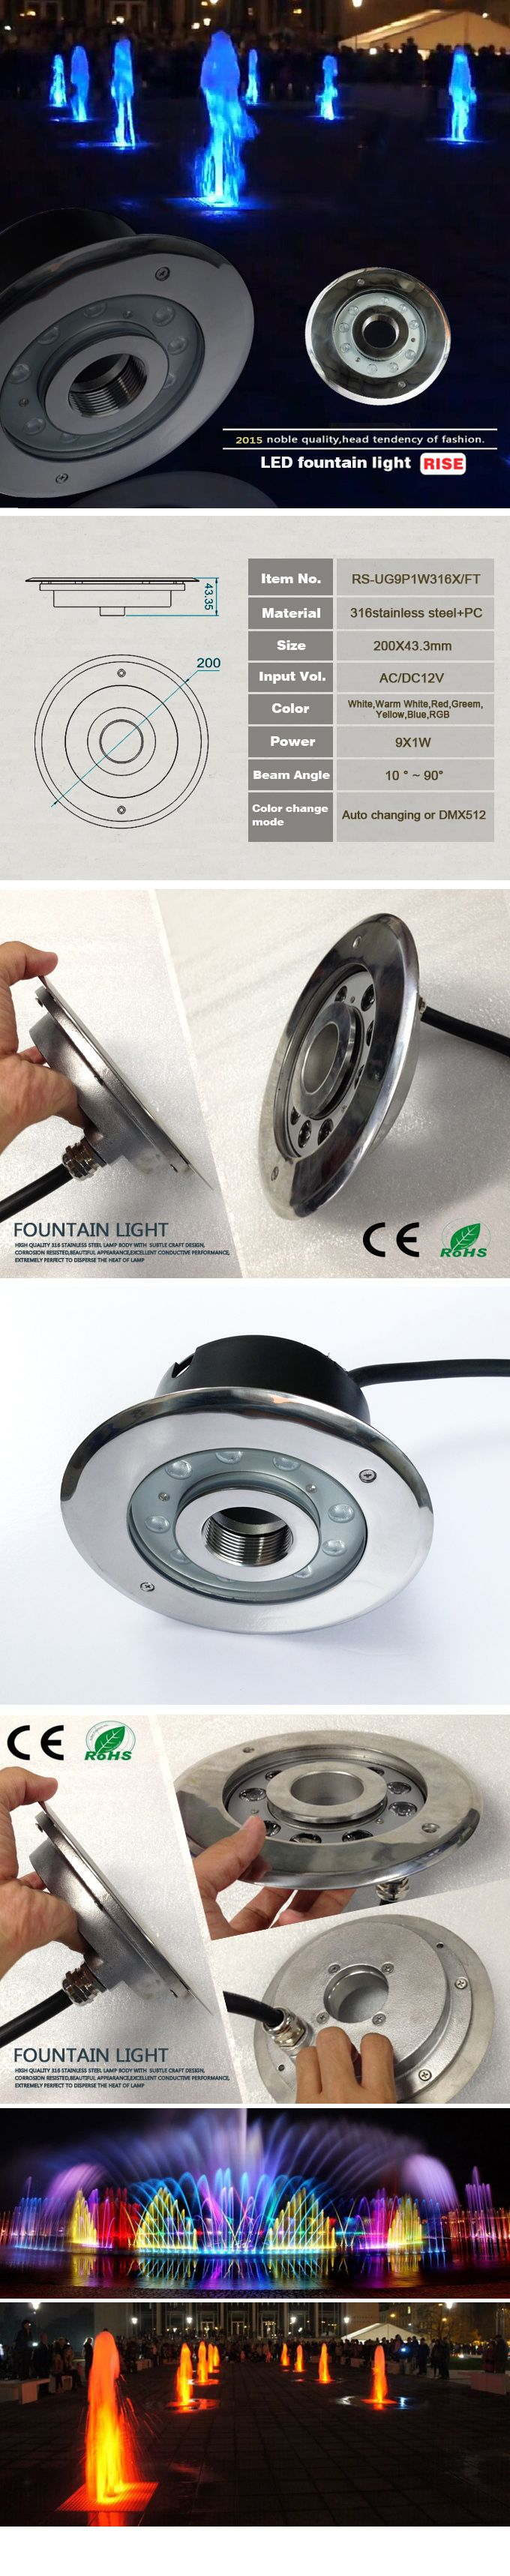 Low Priced 9*1W/9*3W 27W,Led Recessed Fountain Light,LED Fountain Light With DMX Function